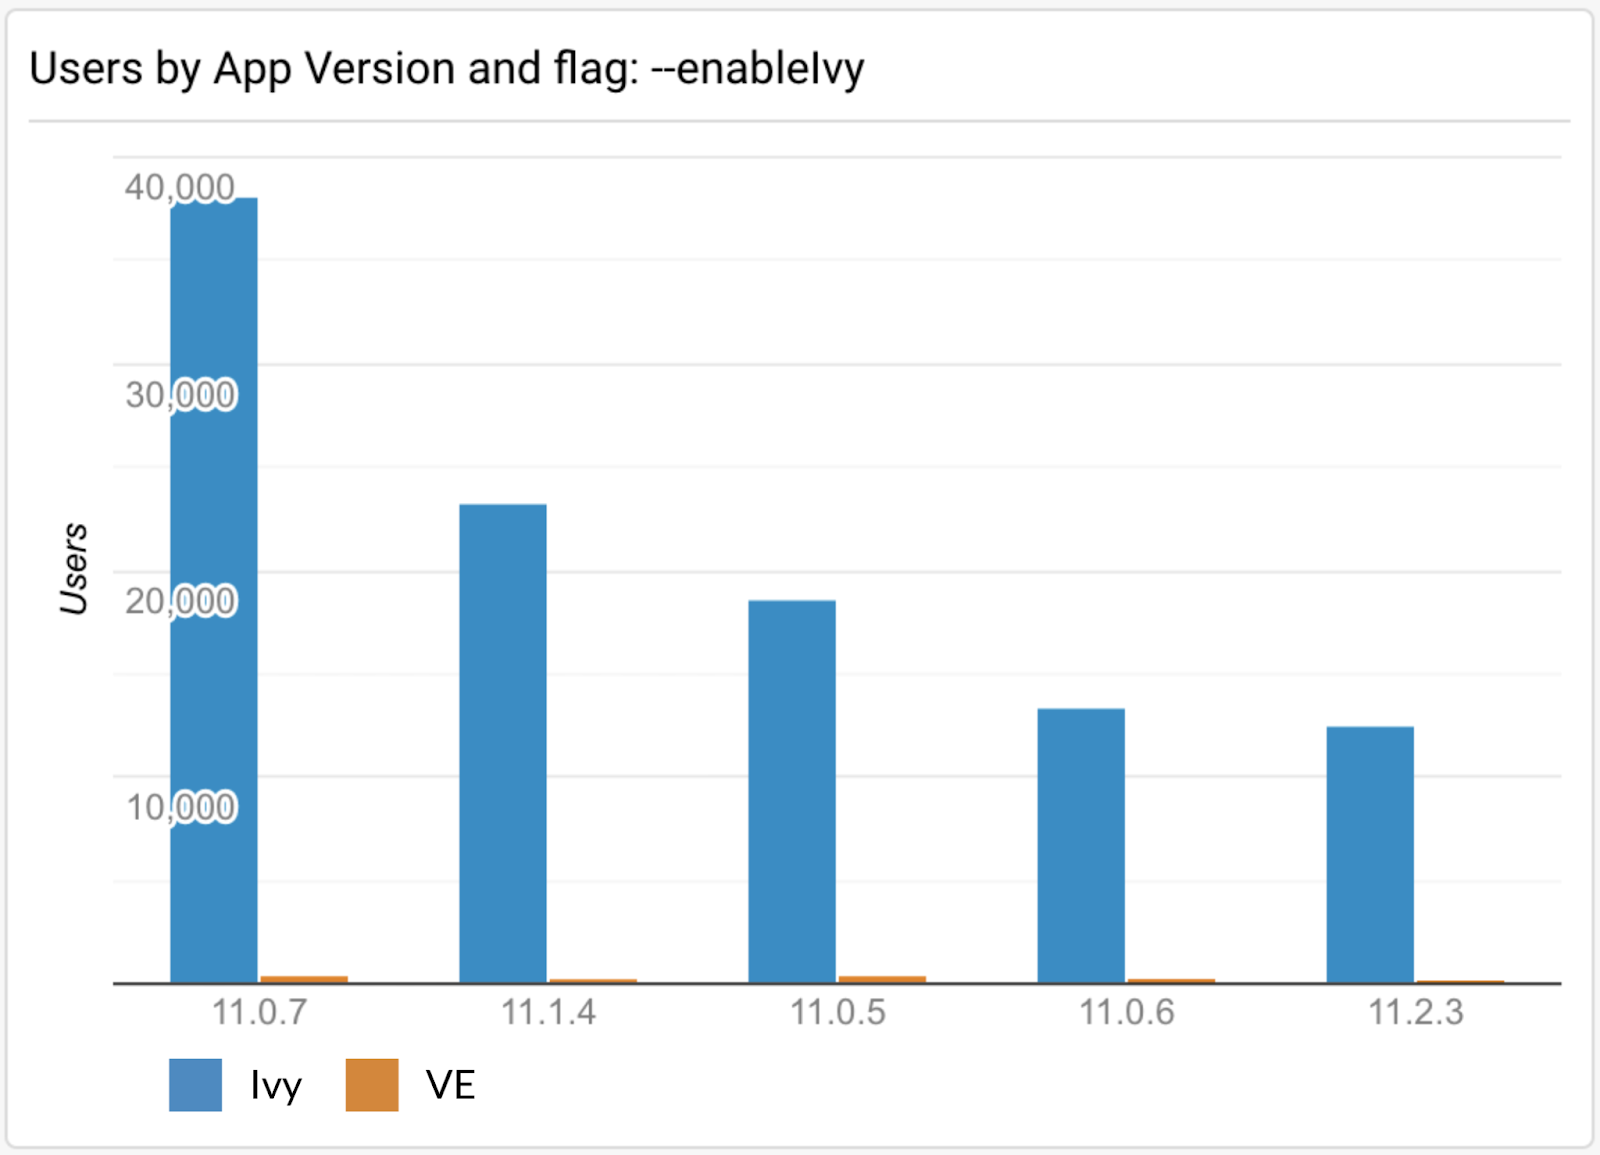 bar graph of applications opting out of Ivy